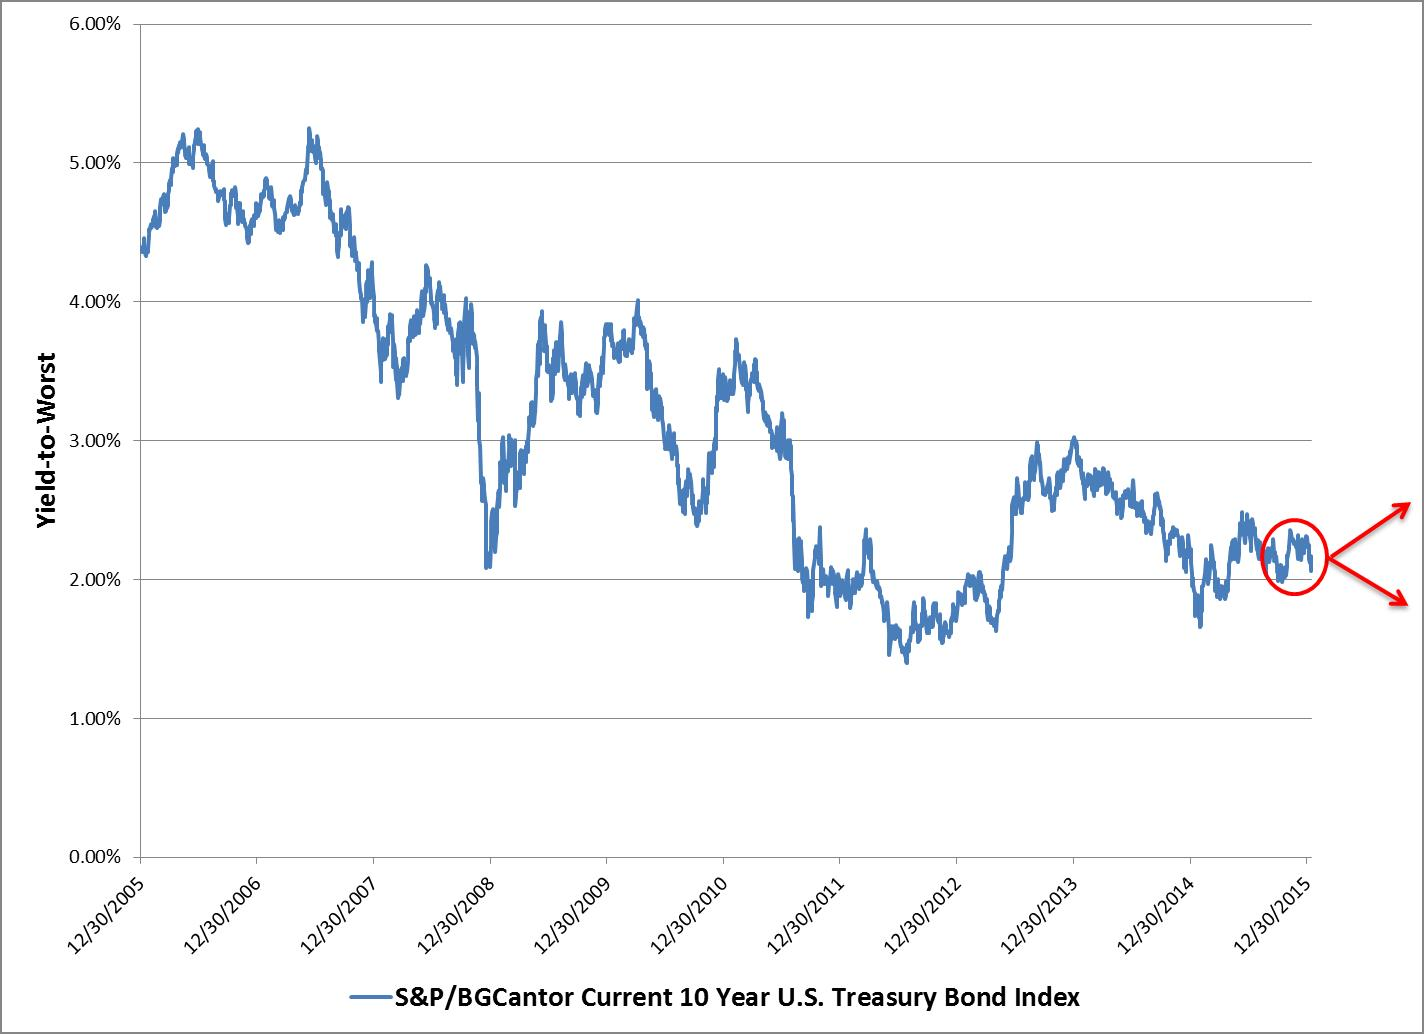 YTW history of the S&PBGCantor Current 10 Year U.S. Treasury Bond Index